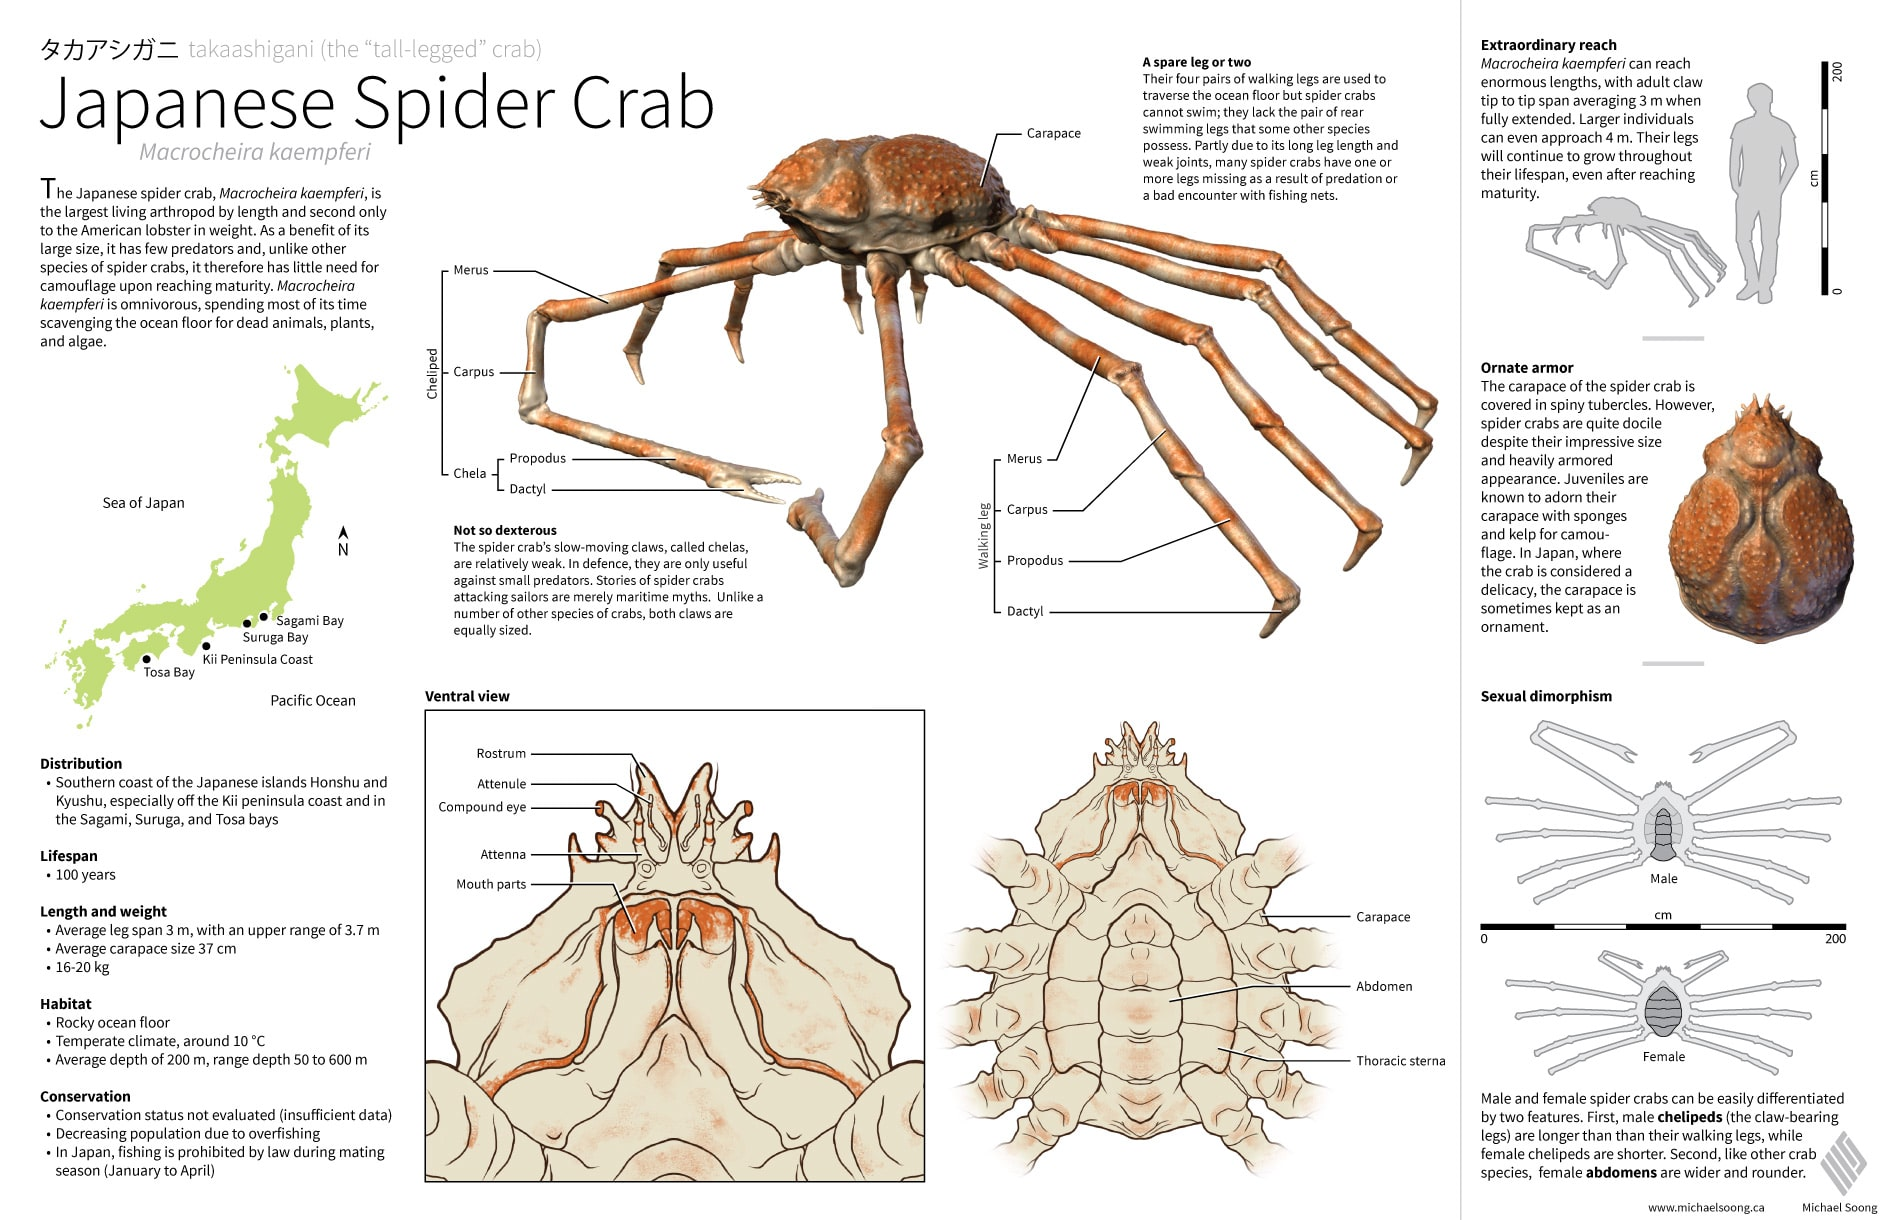 Japanese Spider Crabs: All About The Giant and Scary Crabs